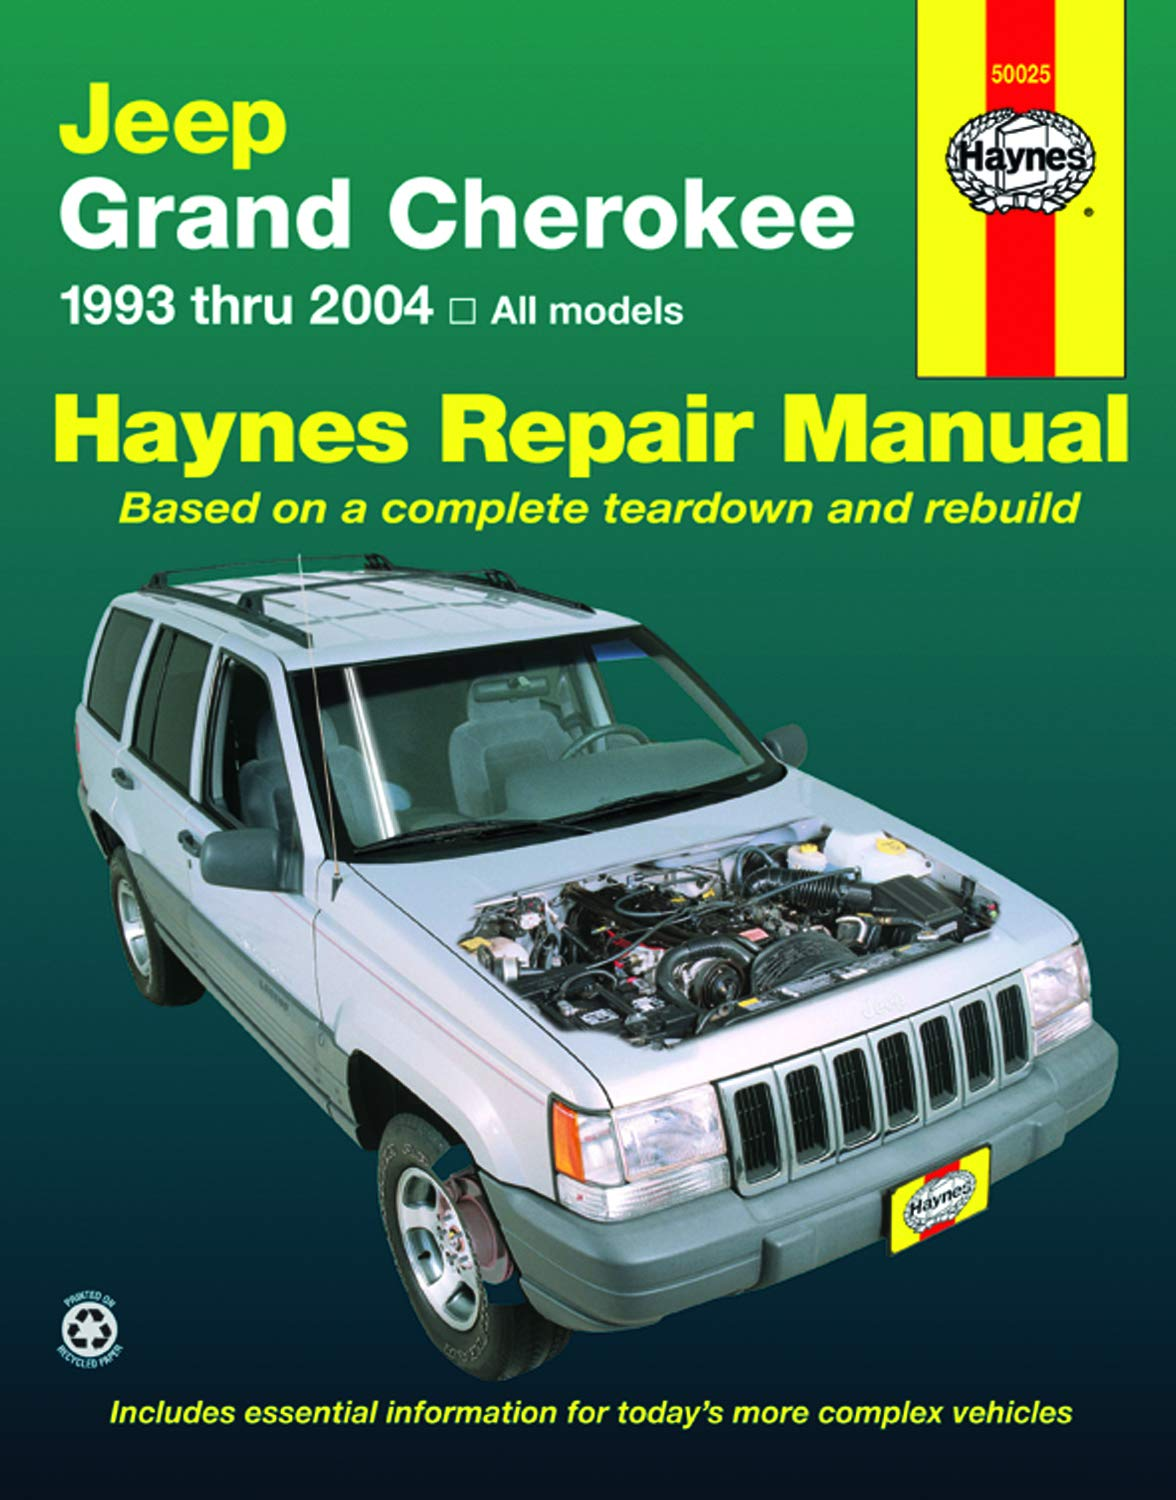 Download Jeep Grand Cherokee 1993 Thru 2004 Haynes Repair Manual: All Models 